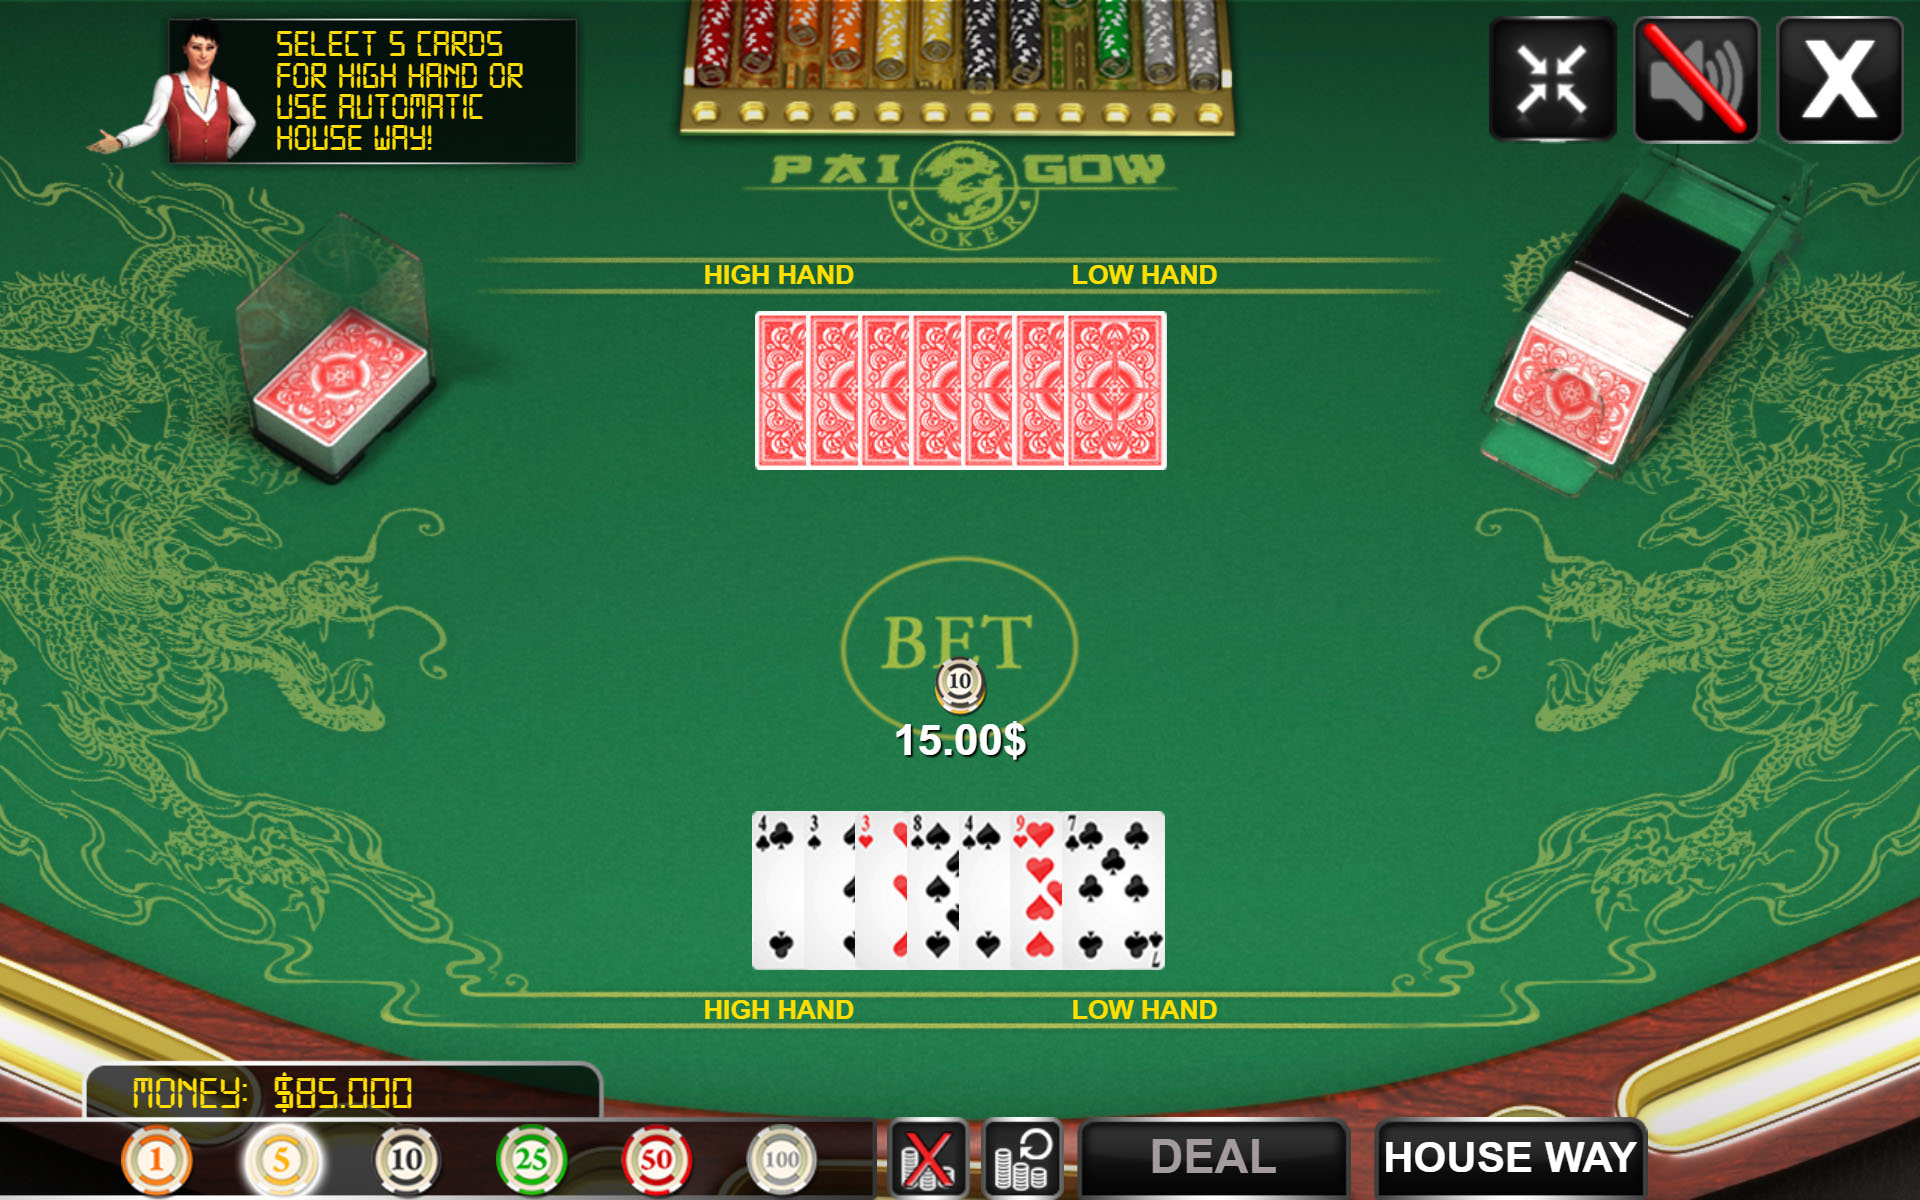 All in or fold poker online